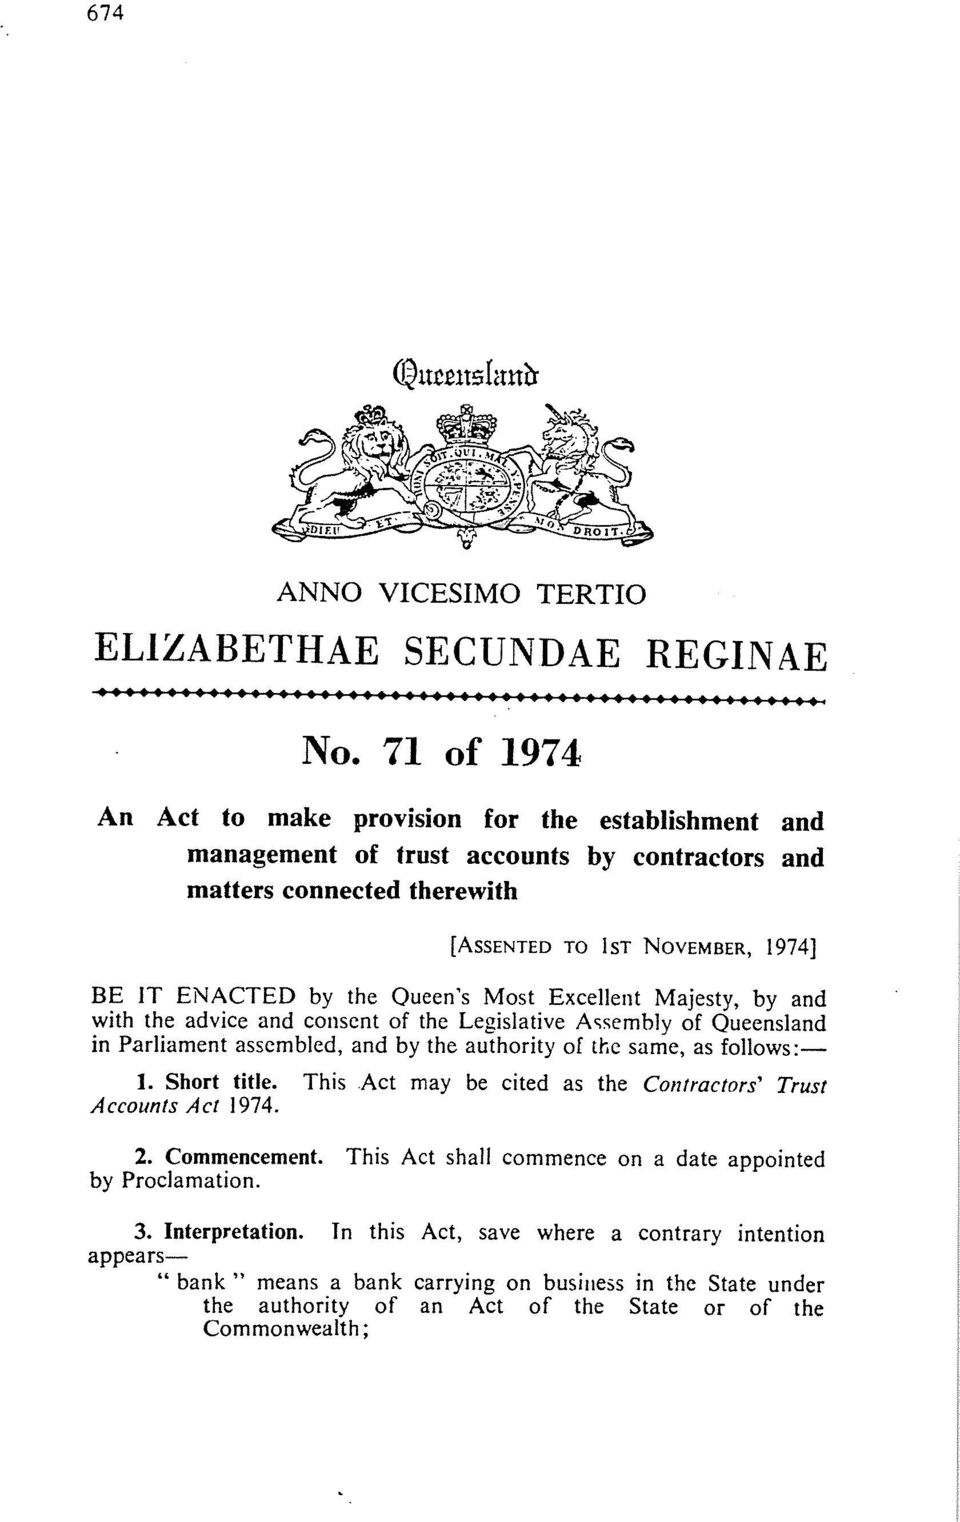 Queen's Most Excellent Majesty, by and with the advice and consent of the Legislative Assembly of Queensland in Parliament assembled, and by the authority of the same, as follows:- 1. Short title.